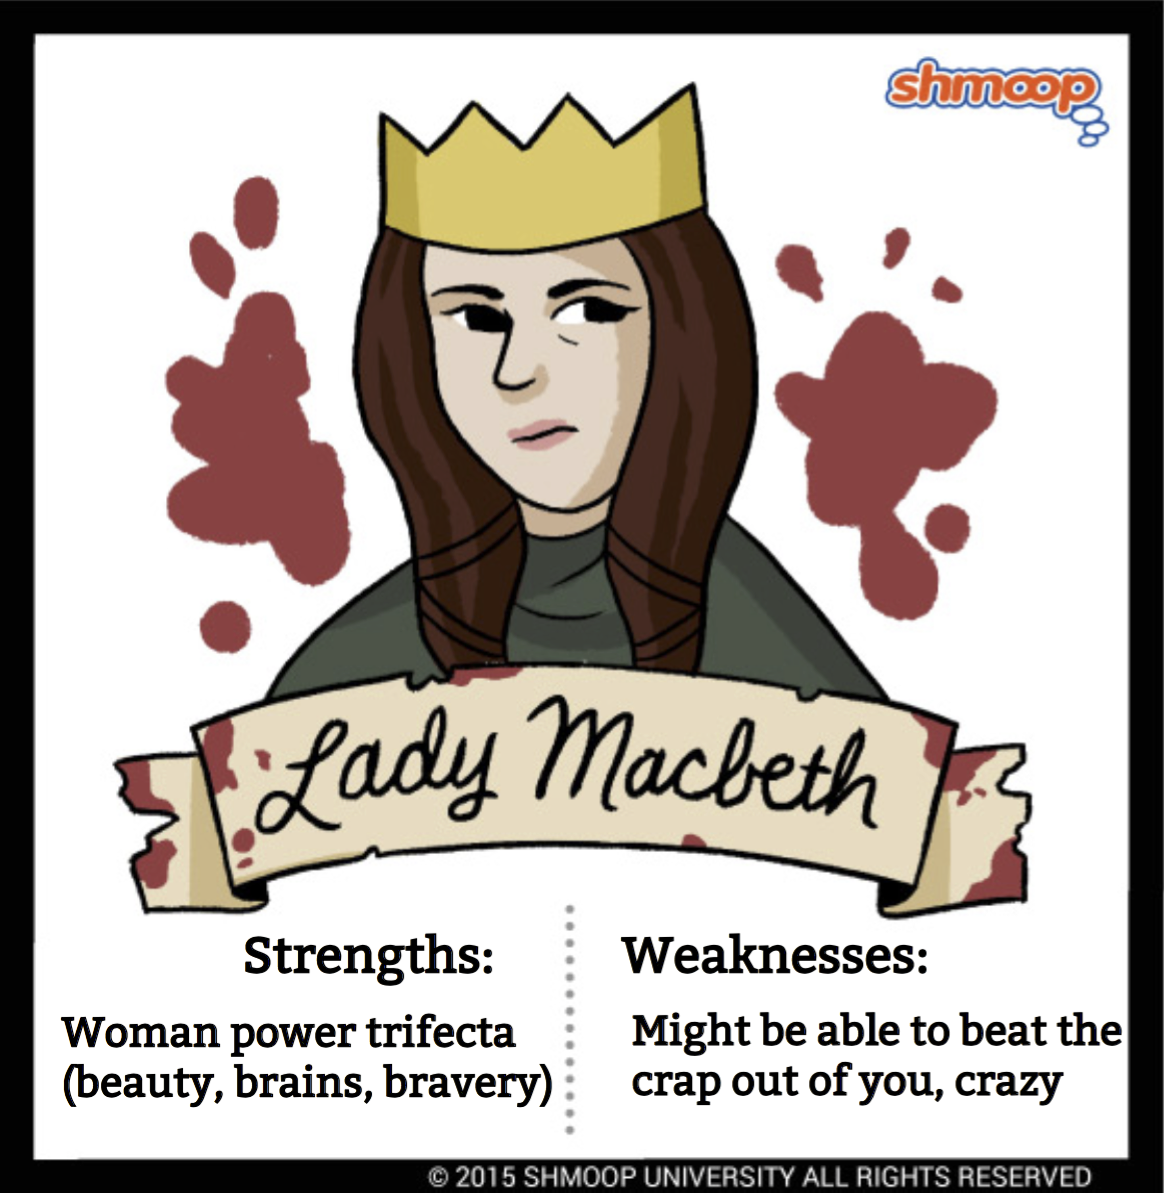 the character of macbeth essay